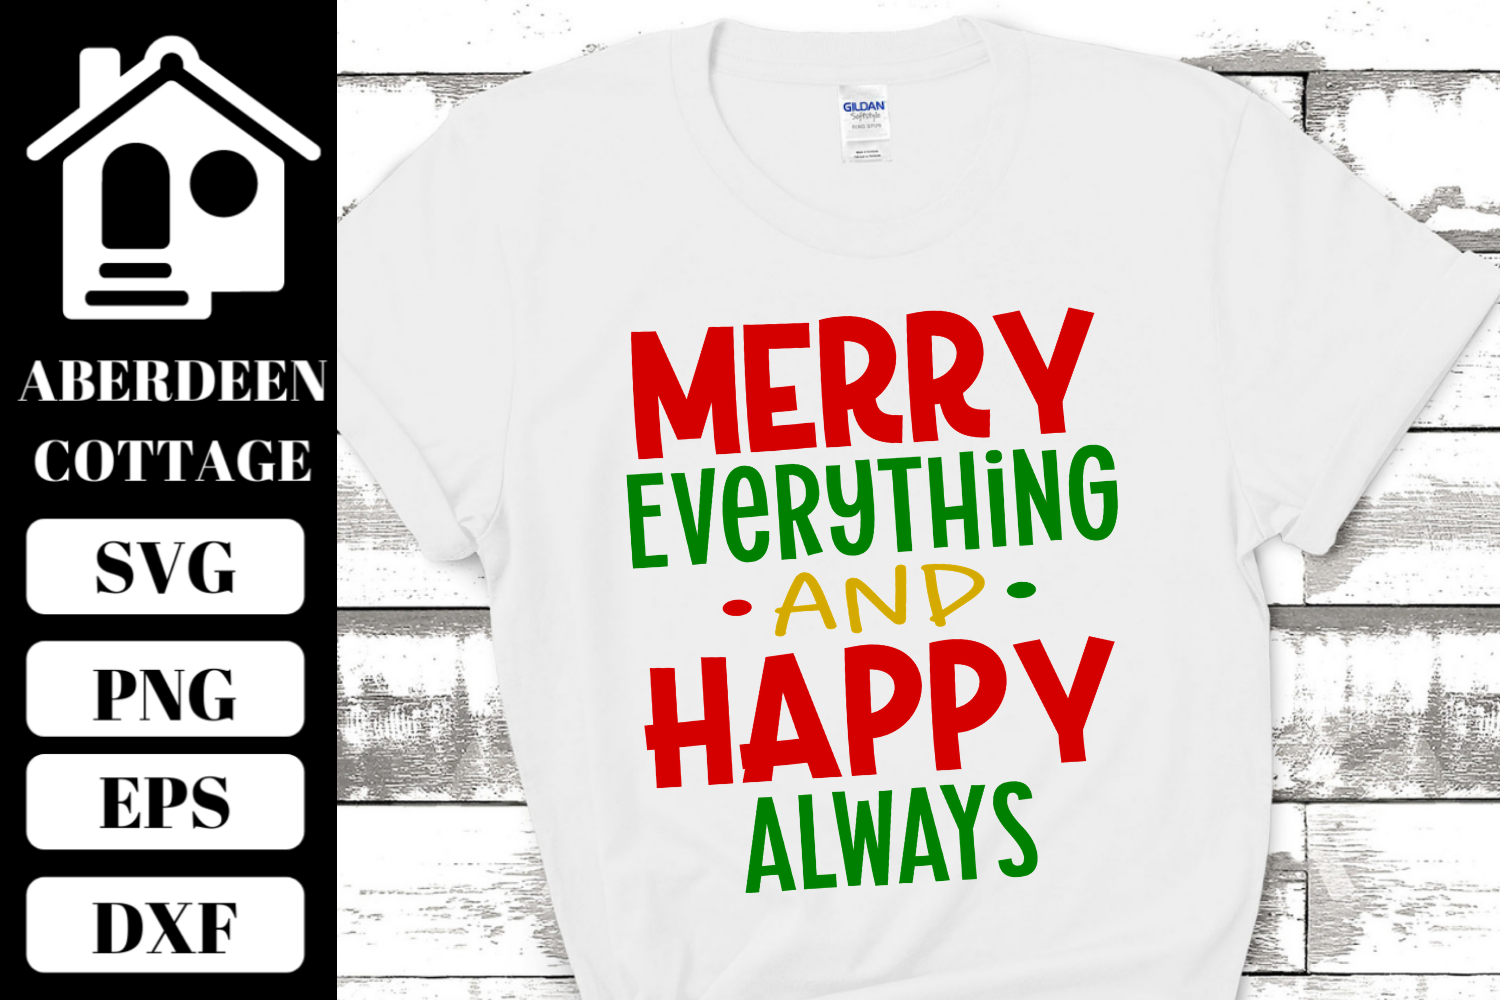 Merry Everything Happy Always SVG | PNG | DXF | EPS example image 2